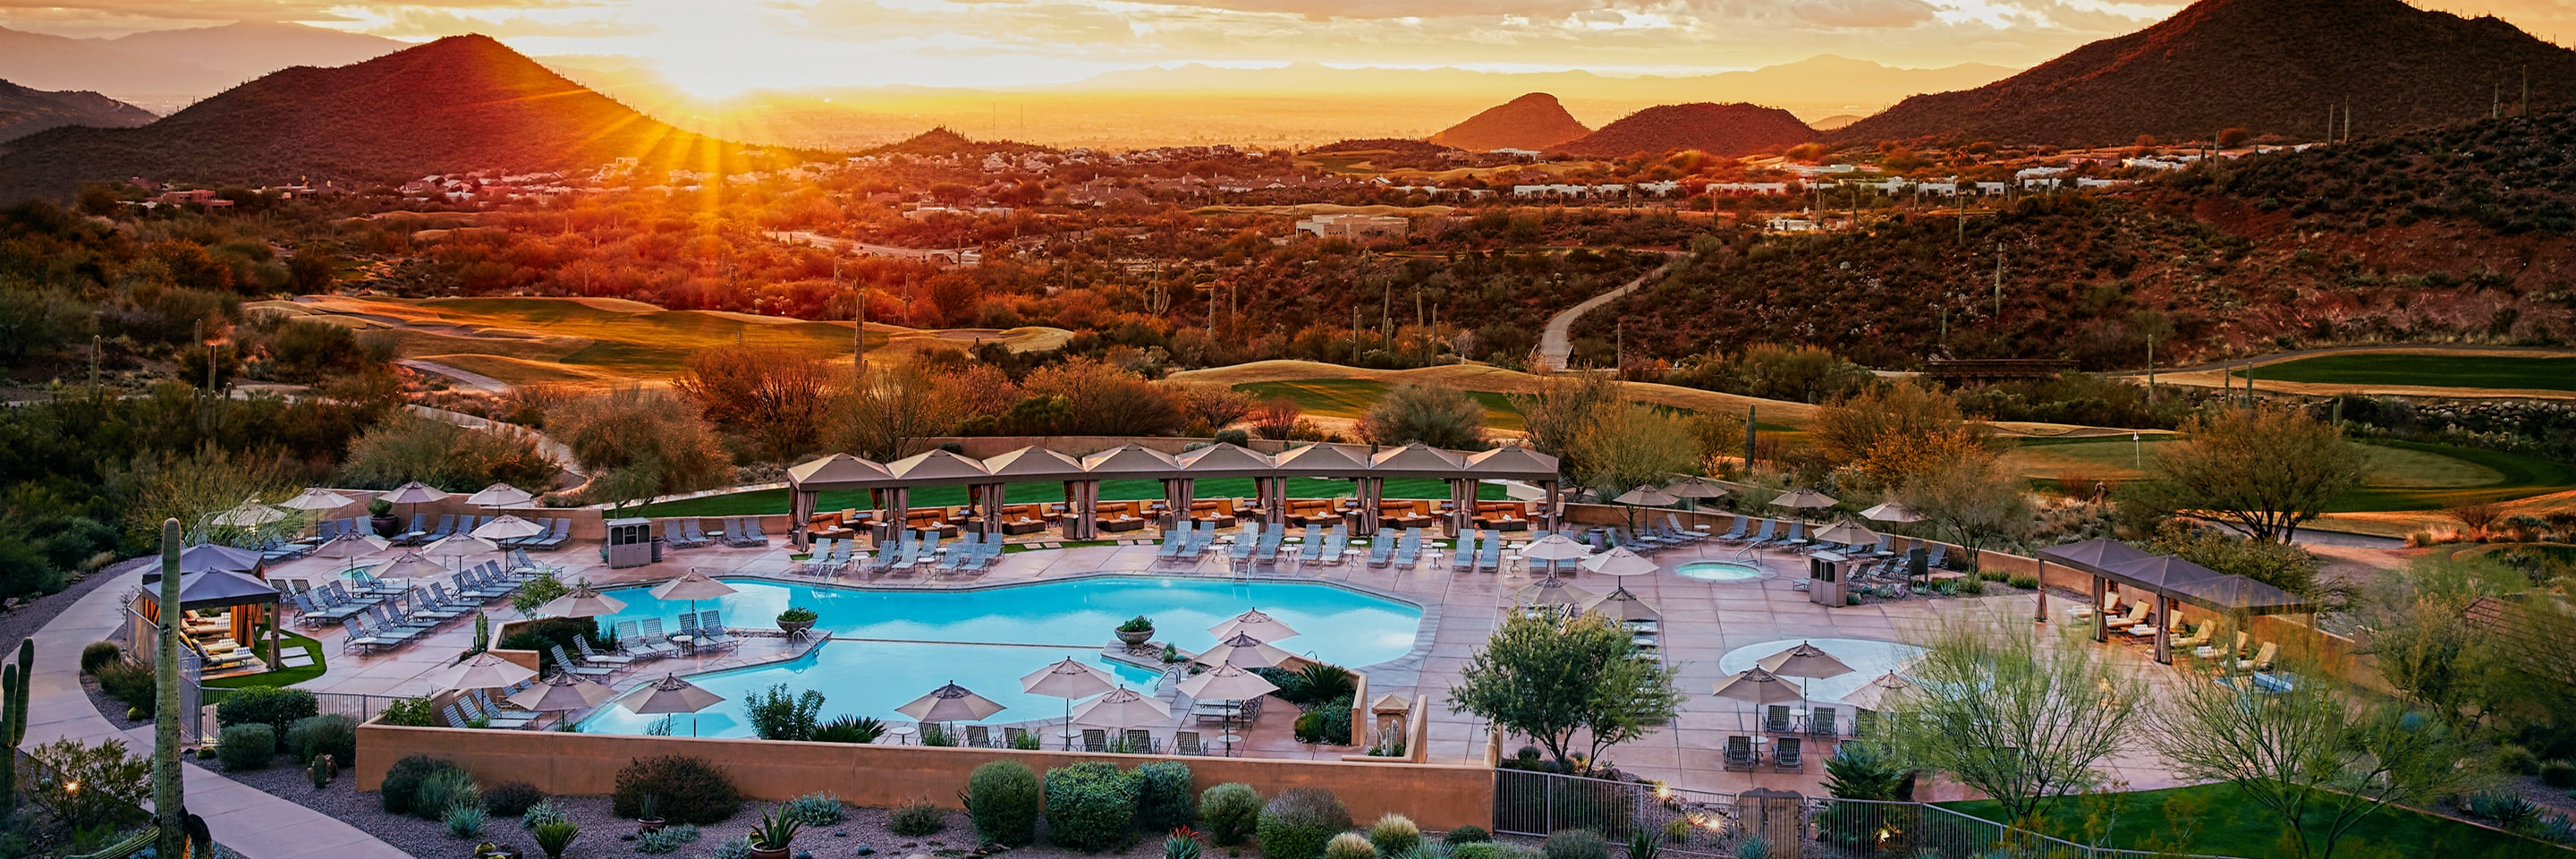 Vista dall' alto del JW Marriott Tucson Starr Pass Resort & Spa al tramonto